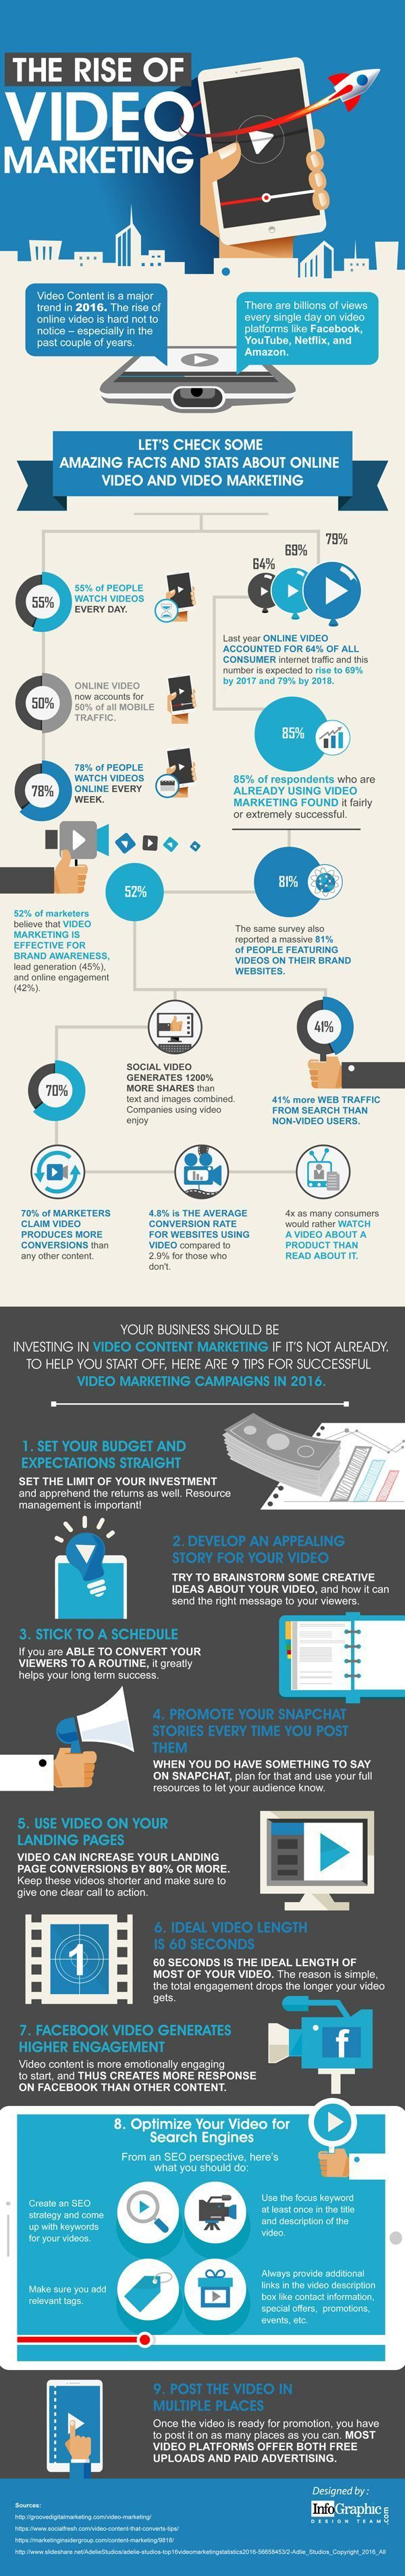 How Video Is Changing The Face Of Online Marketing [Infographic]